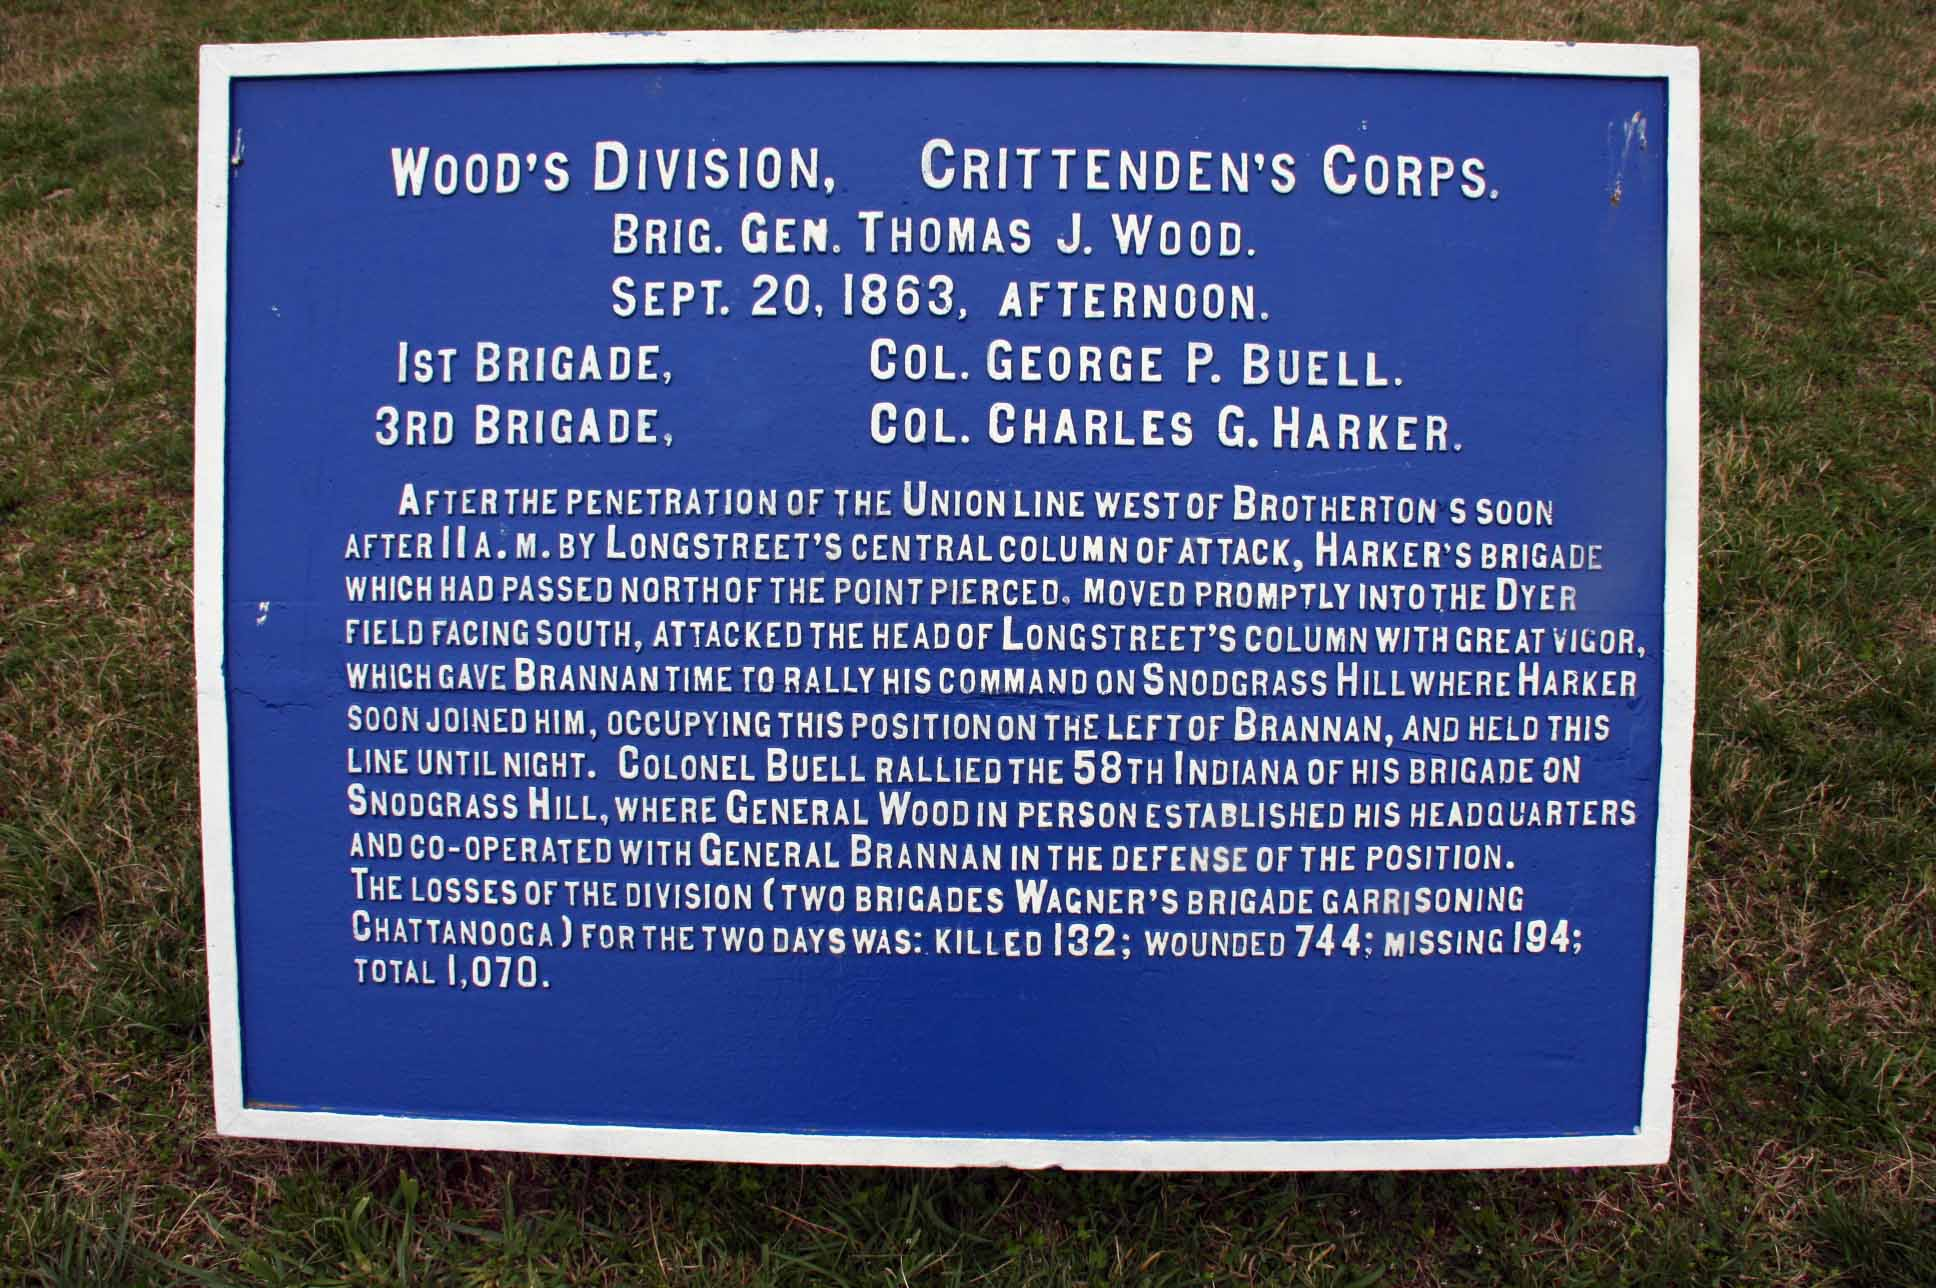 Wood's Division, Crittenden's Corps. Tablet, click photo to enlarge.